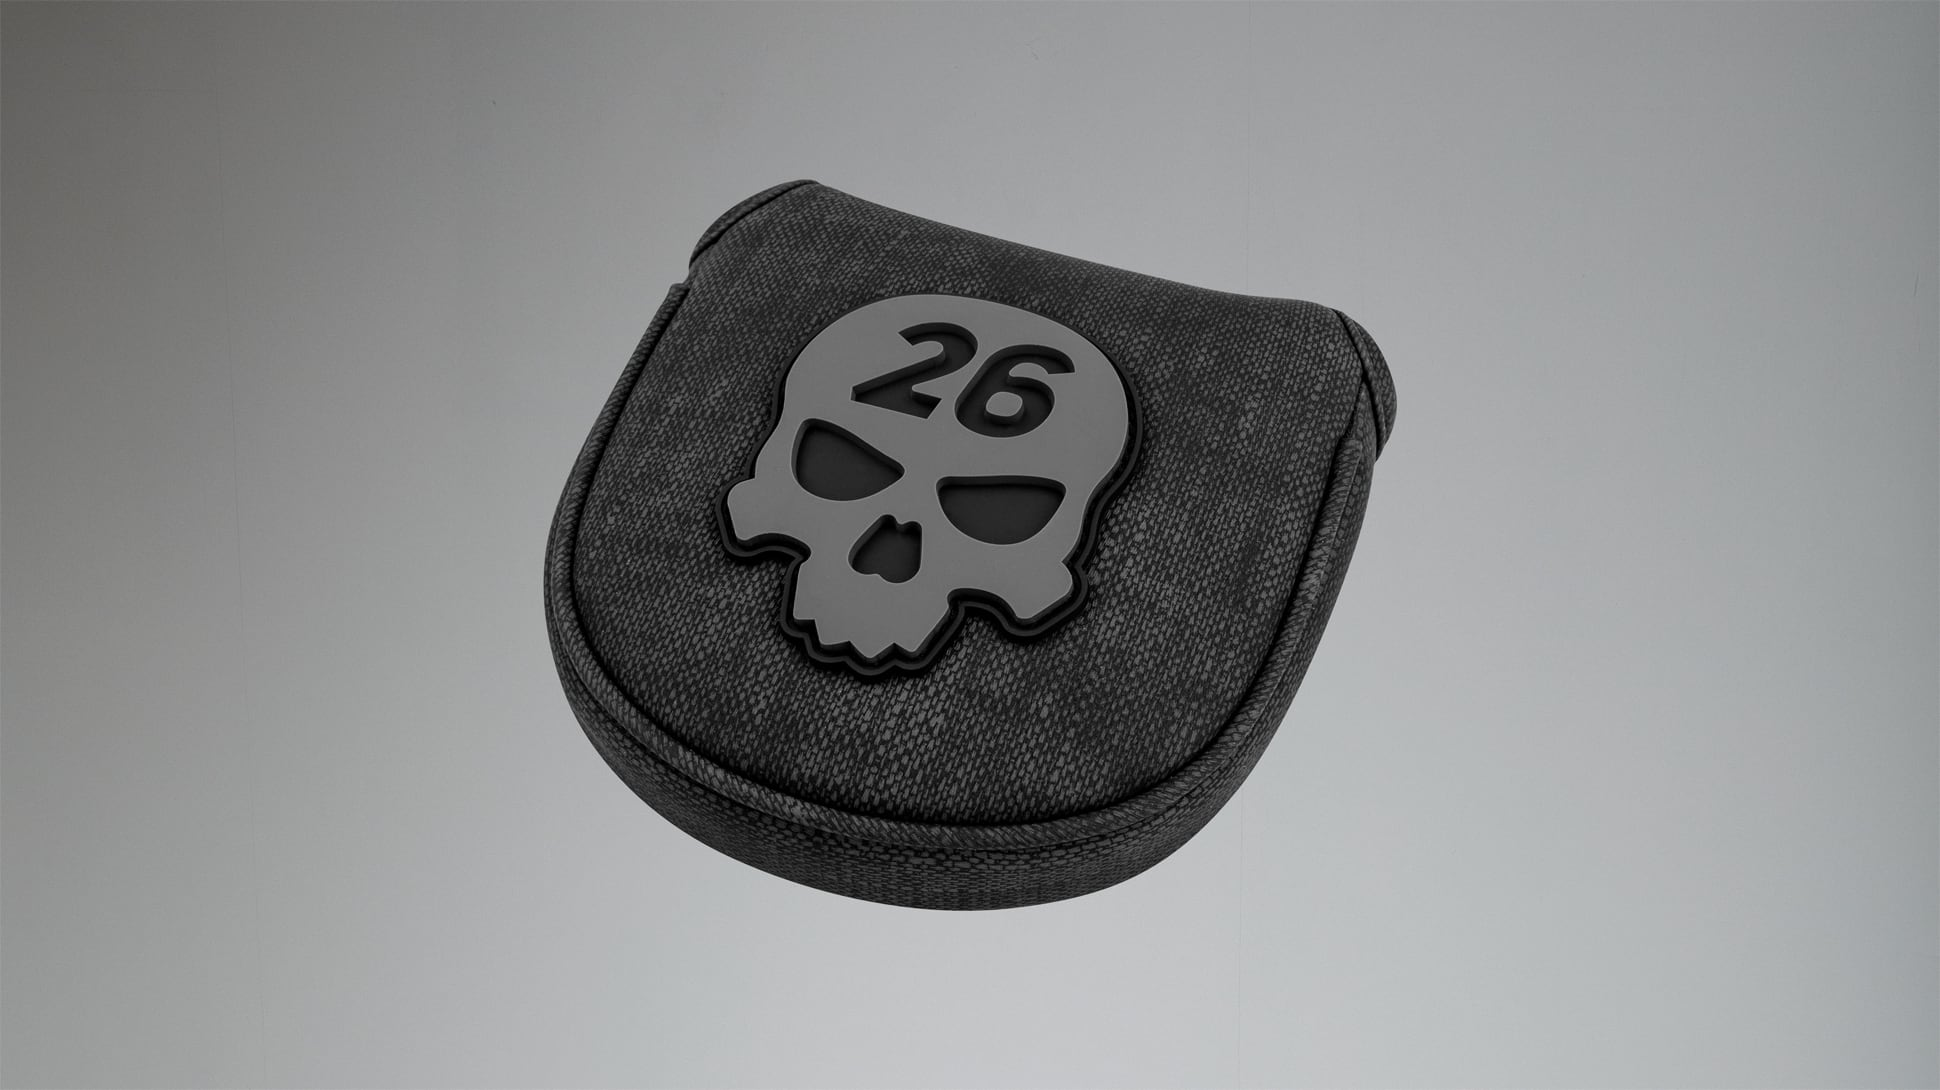 Darkness Mallet Putter Headcover Image 1